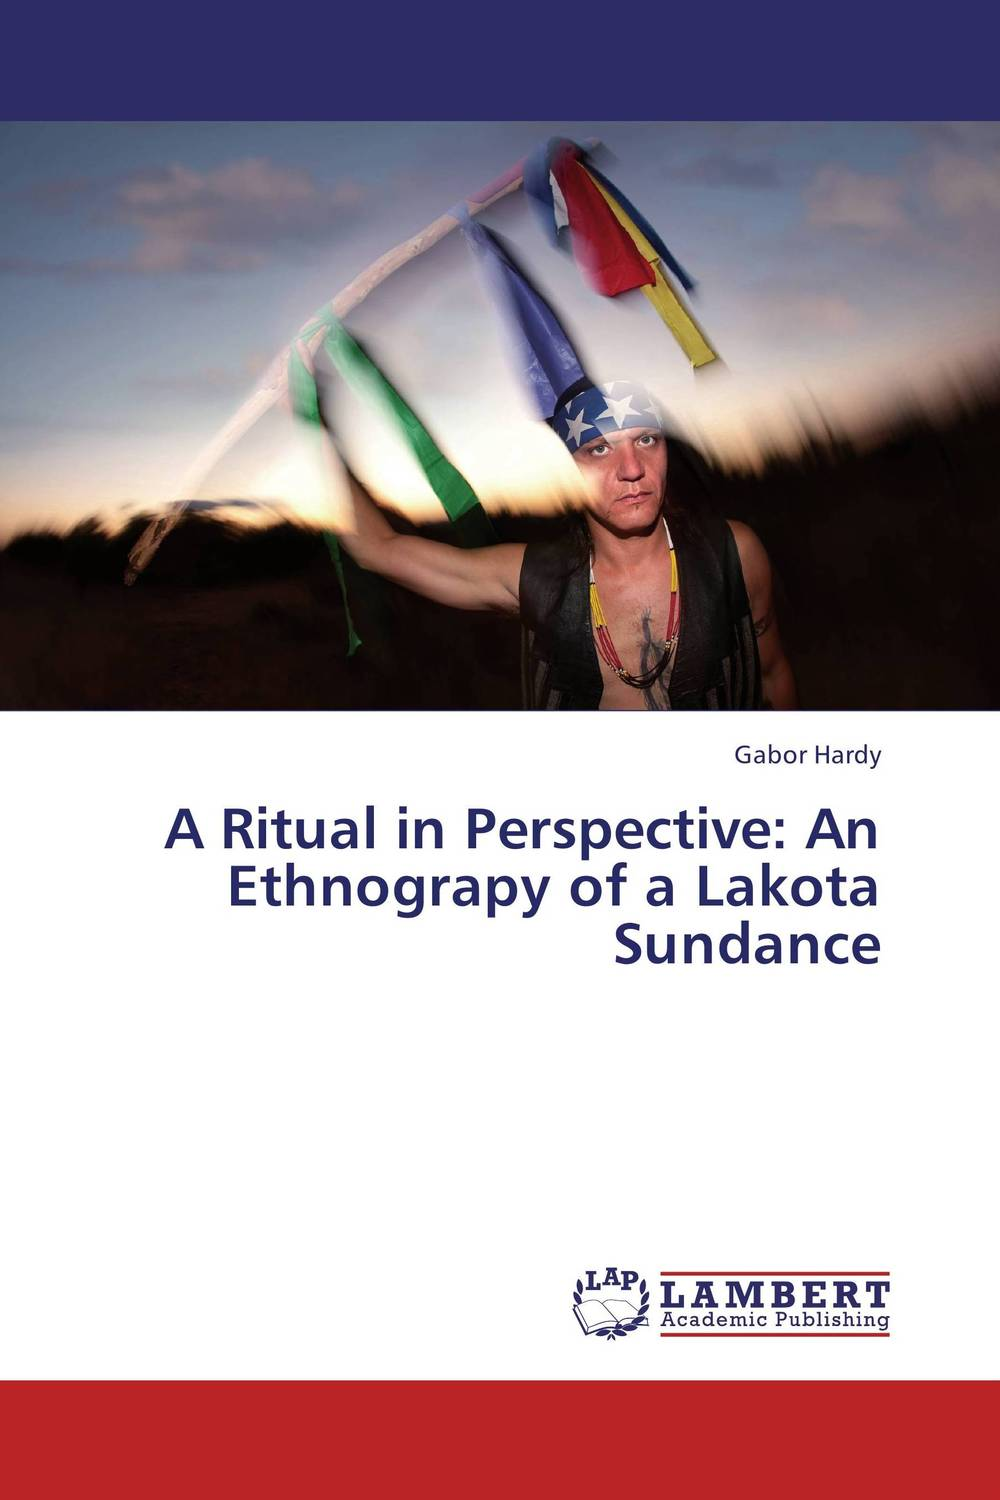 A Ritual in Perspective: An Ethnograpy of a Lakota Sundance